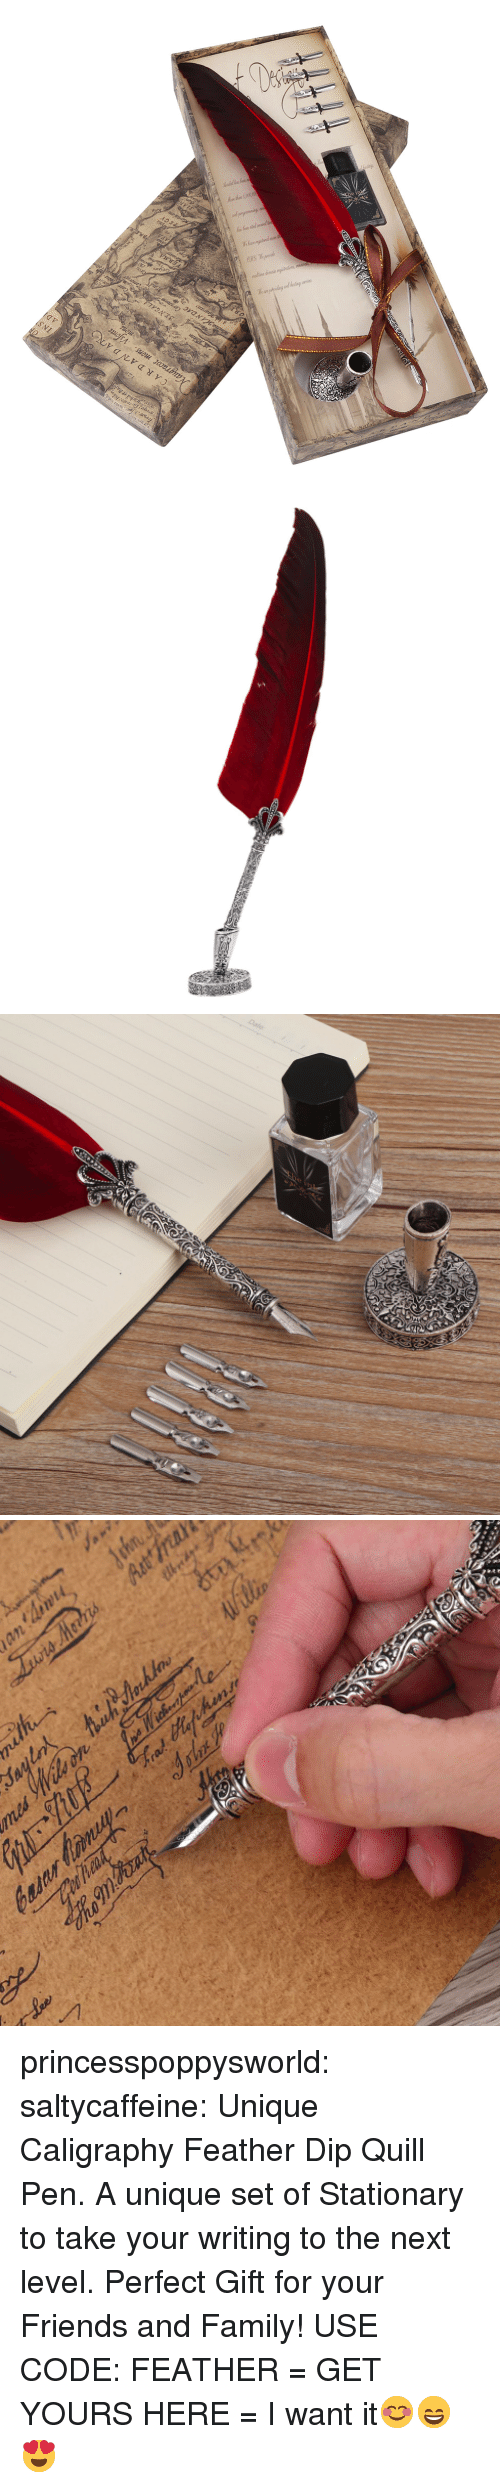 Family, Friends, and Target: princesspoppysworld:  saltycaffeine:  Unique Caligraphy Feather Dip Quill Pen. A unique set of Stationary to take your writing to the next level. Perfect Gift for your Friends and Family! USE CODE: FEATHER = GET YOURS HERE =   I want it😊😄😍